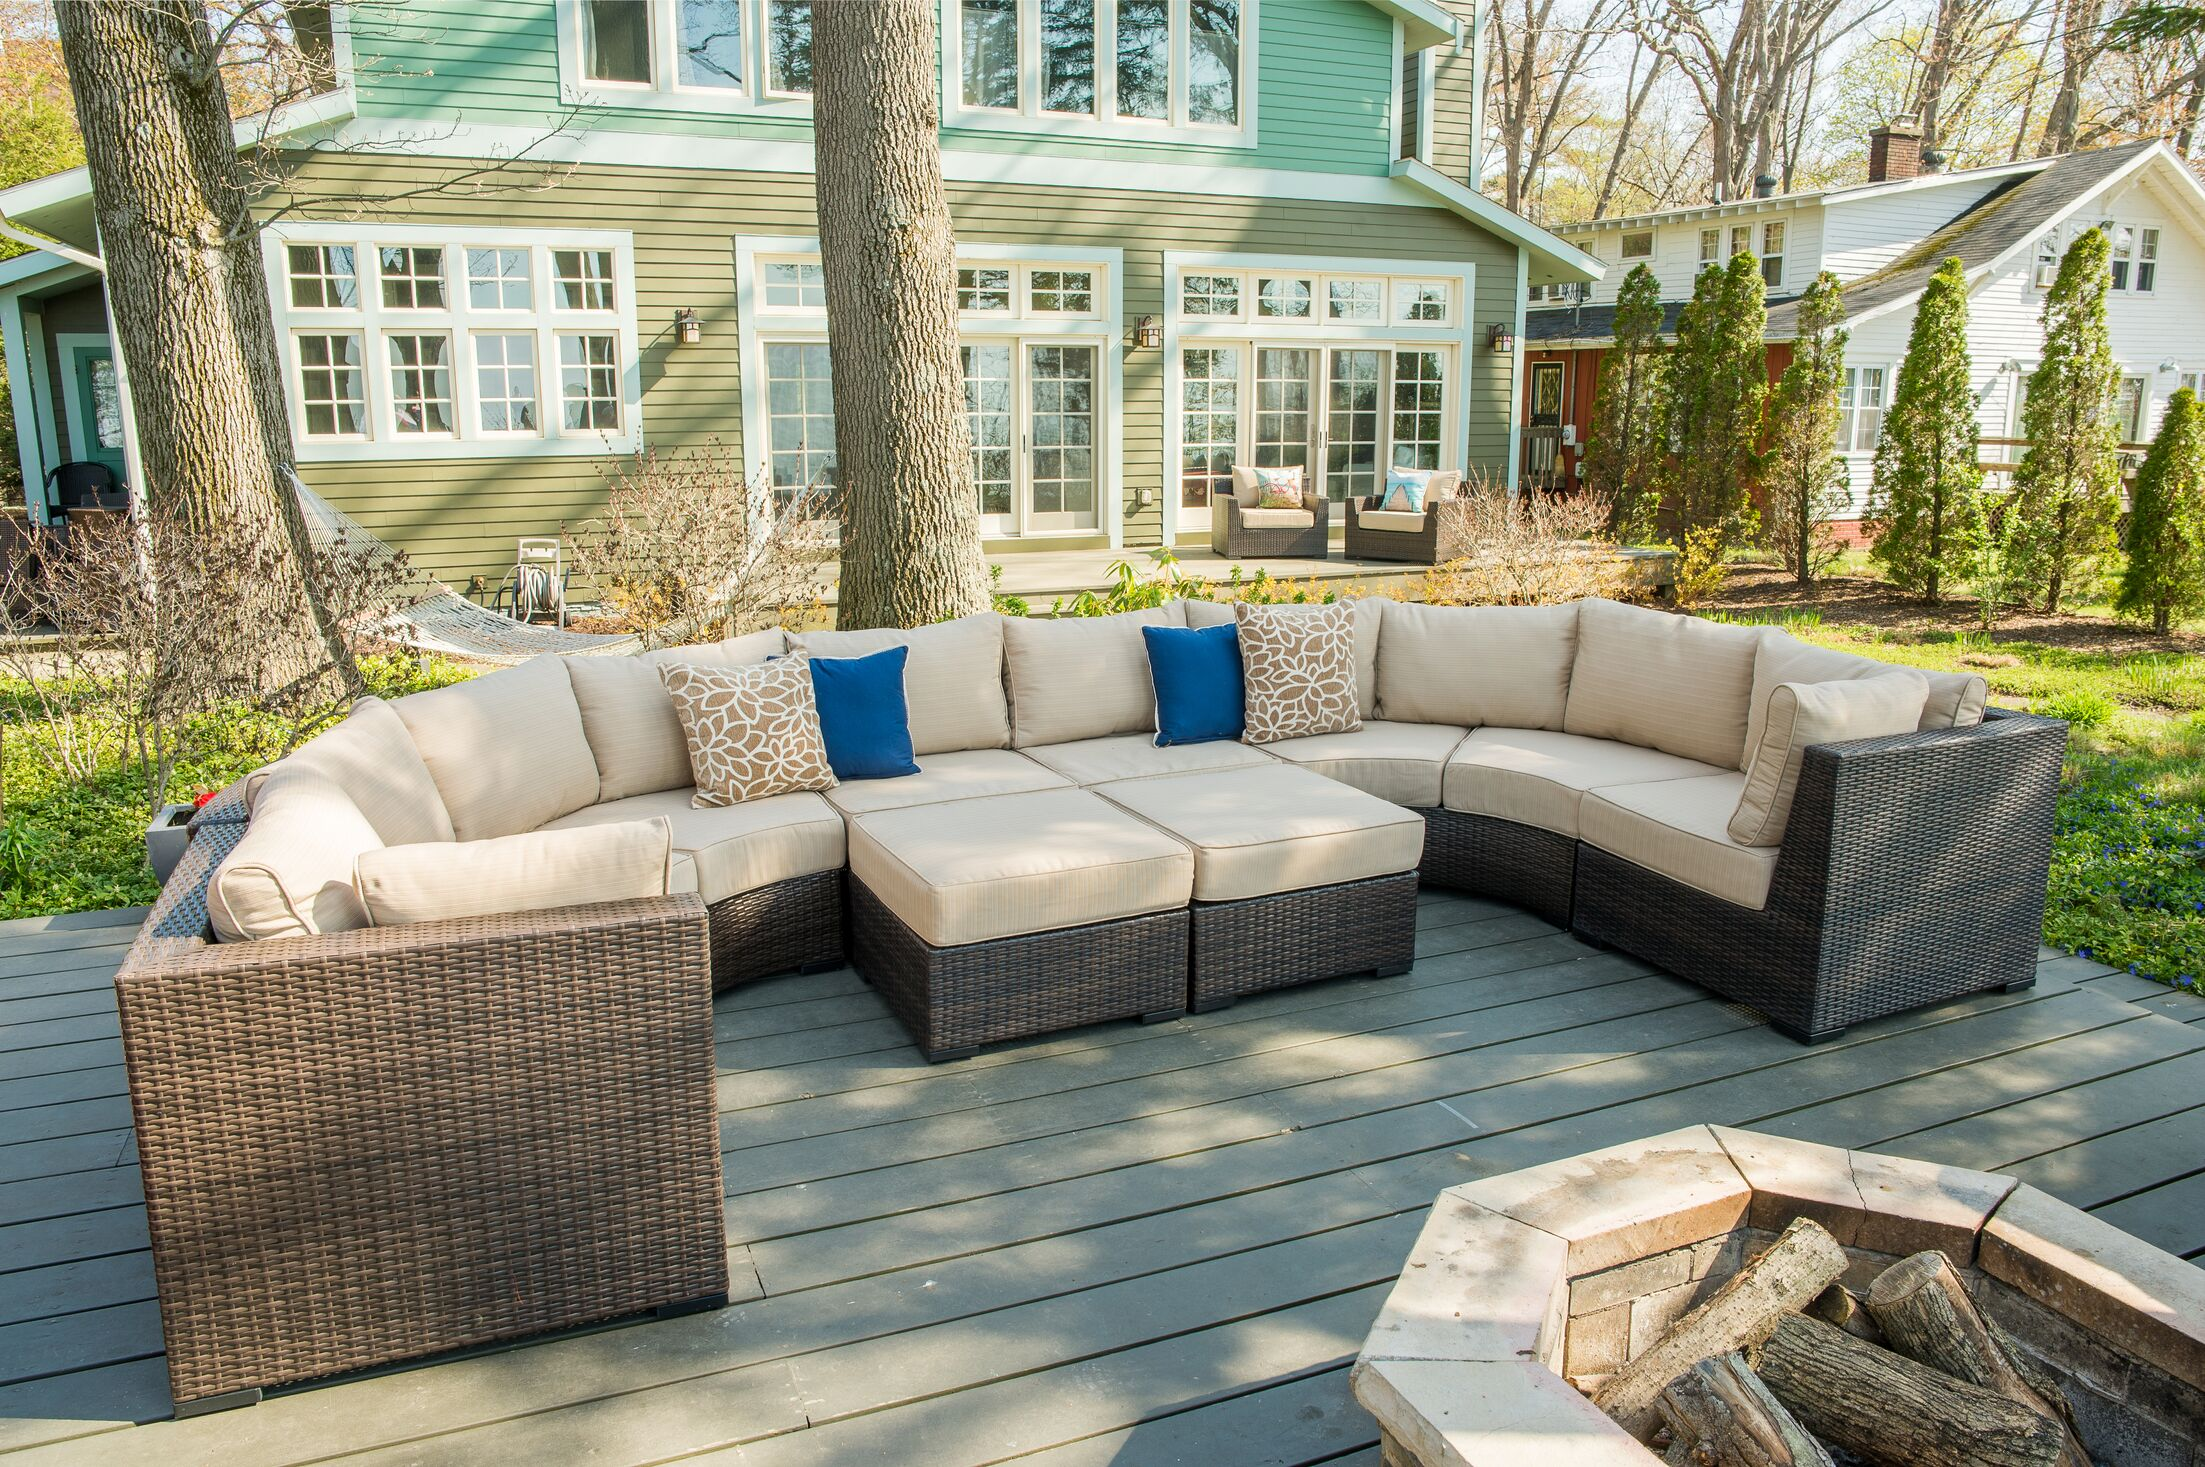 Darden 8 Piece Rattan Sectional Seating Group with Cushions Cushion Color: Sangria